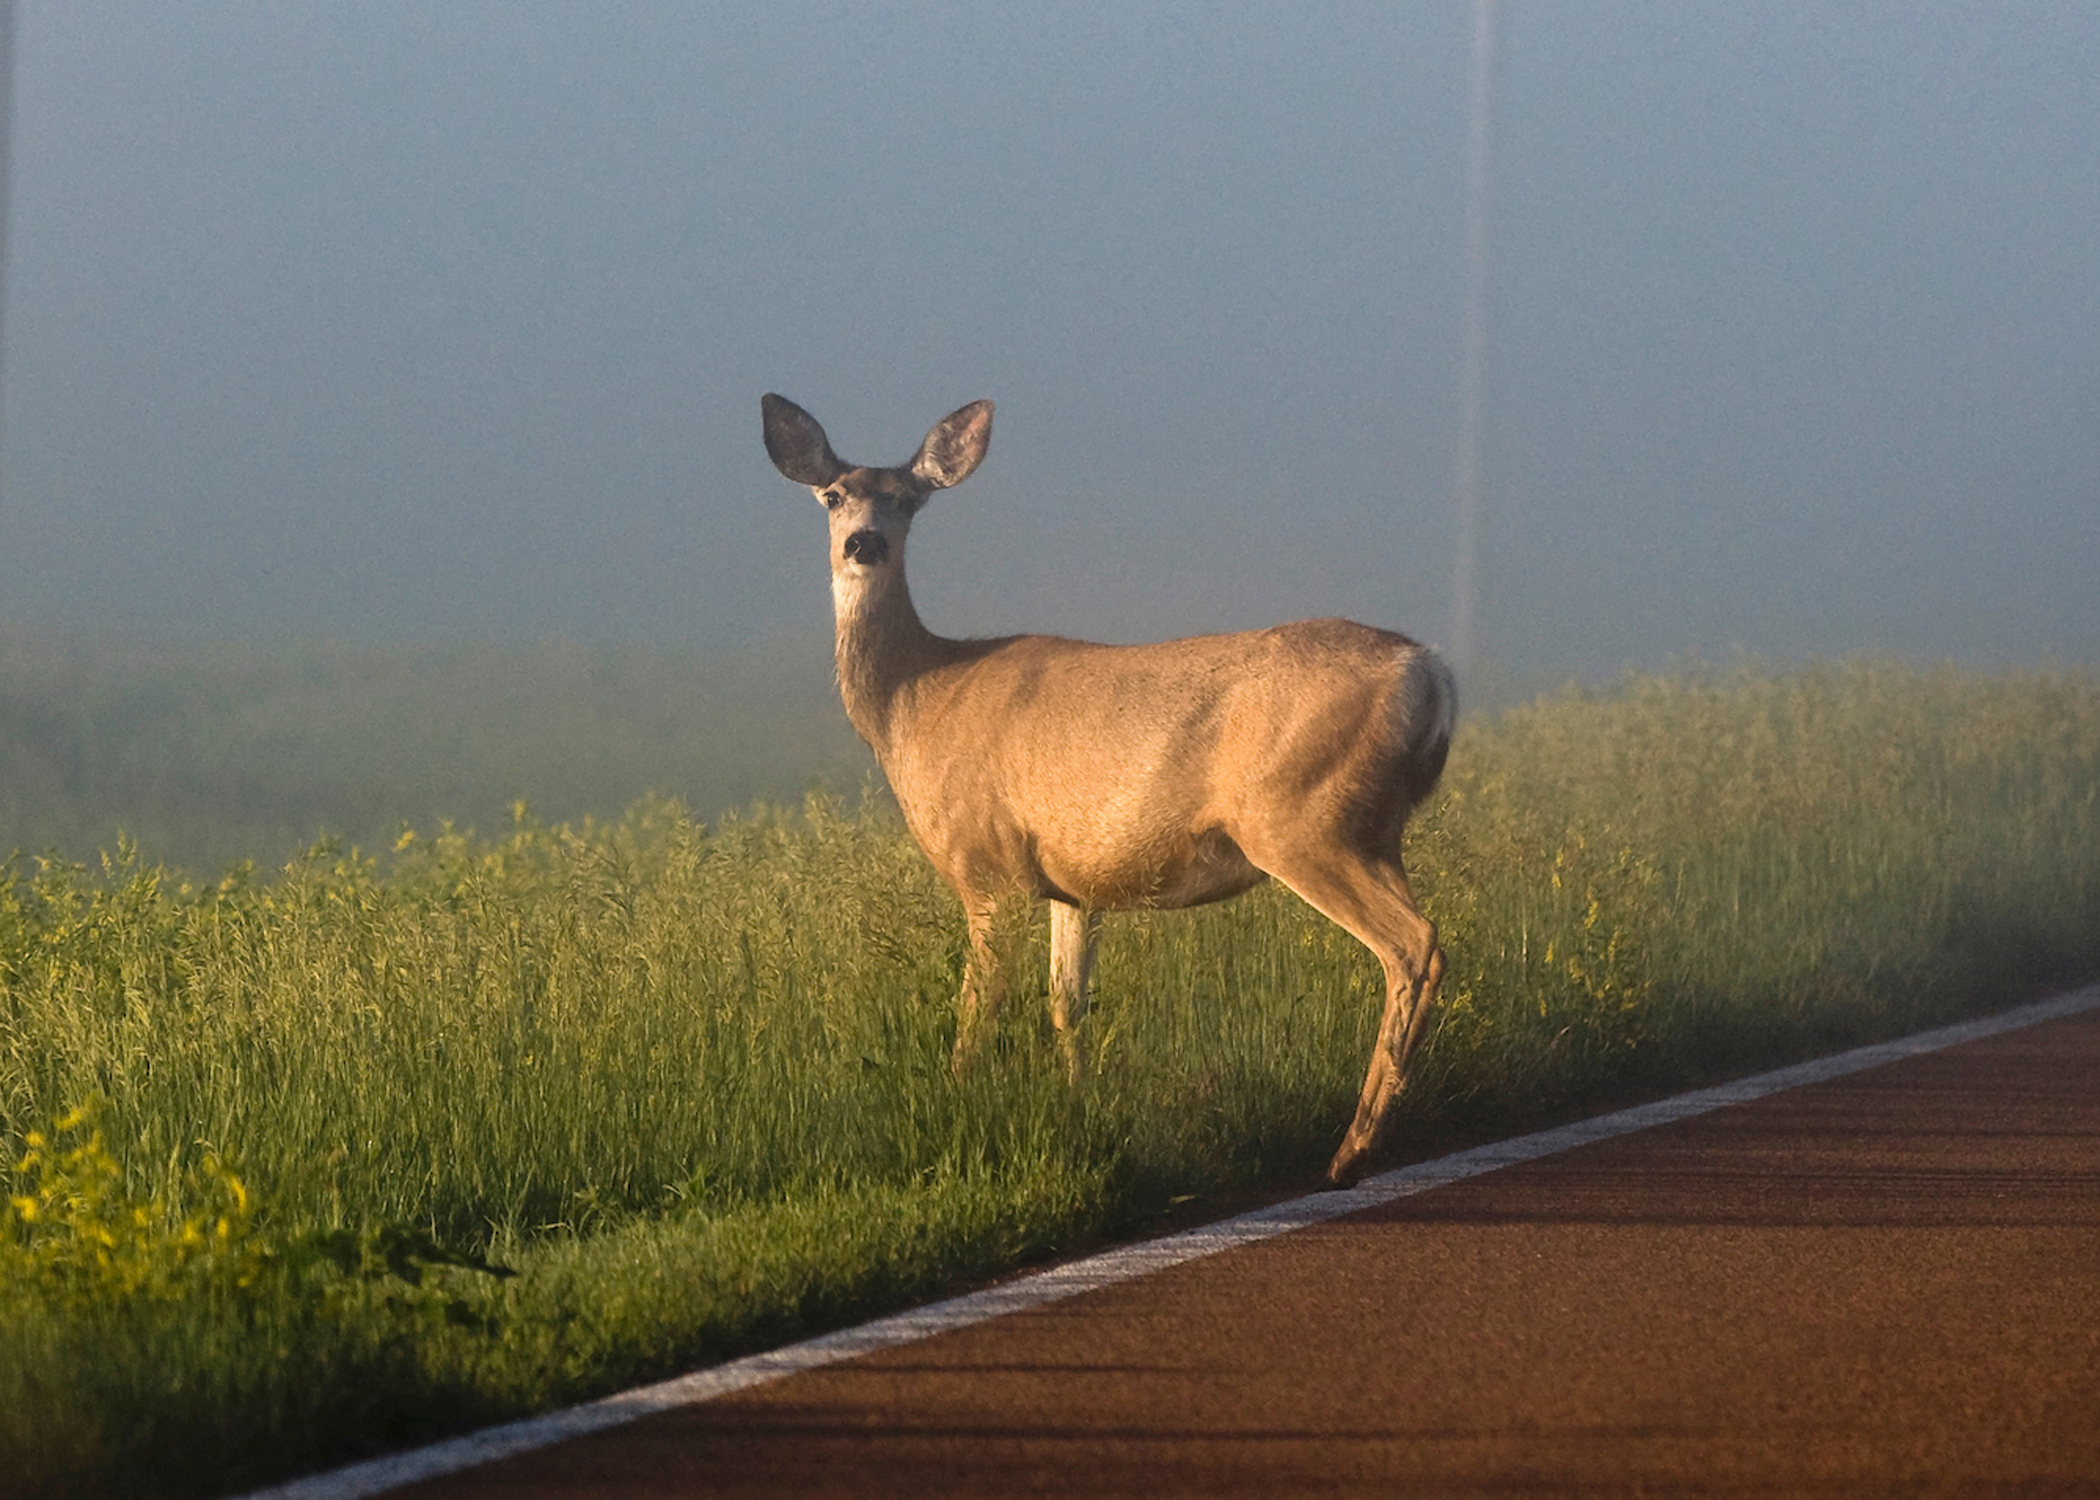 KDOT Warns of the Increase in Vehicle-Deer Crashes